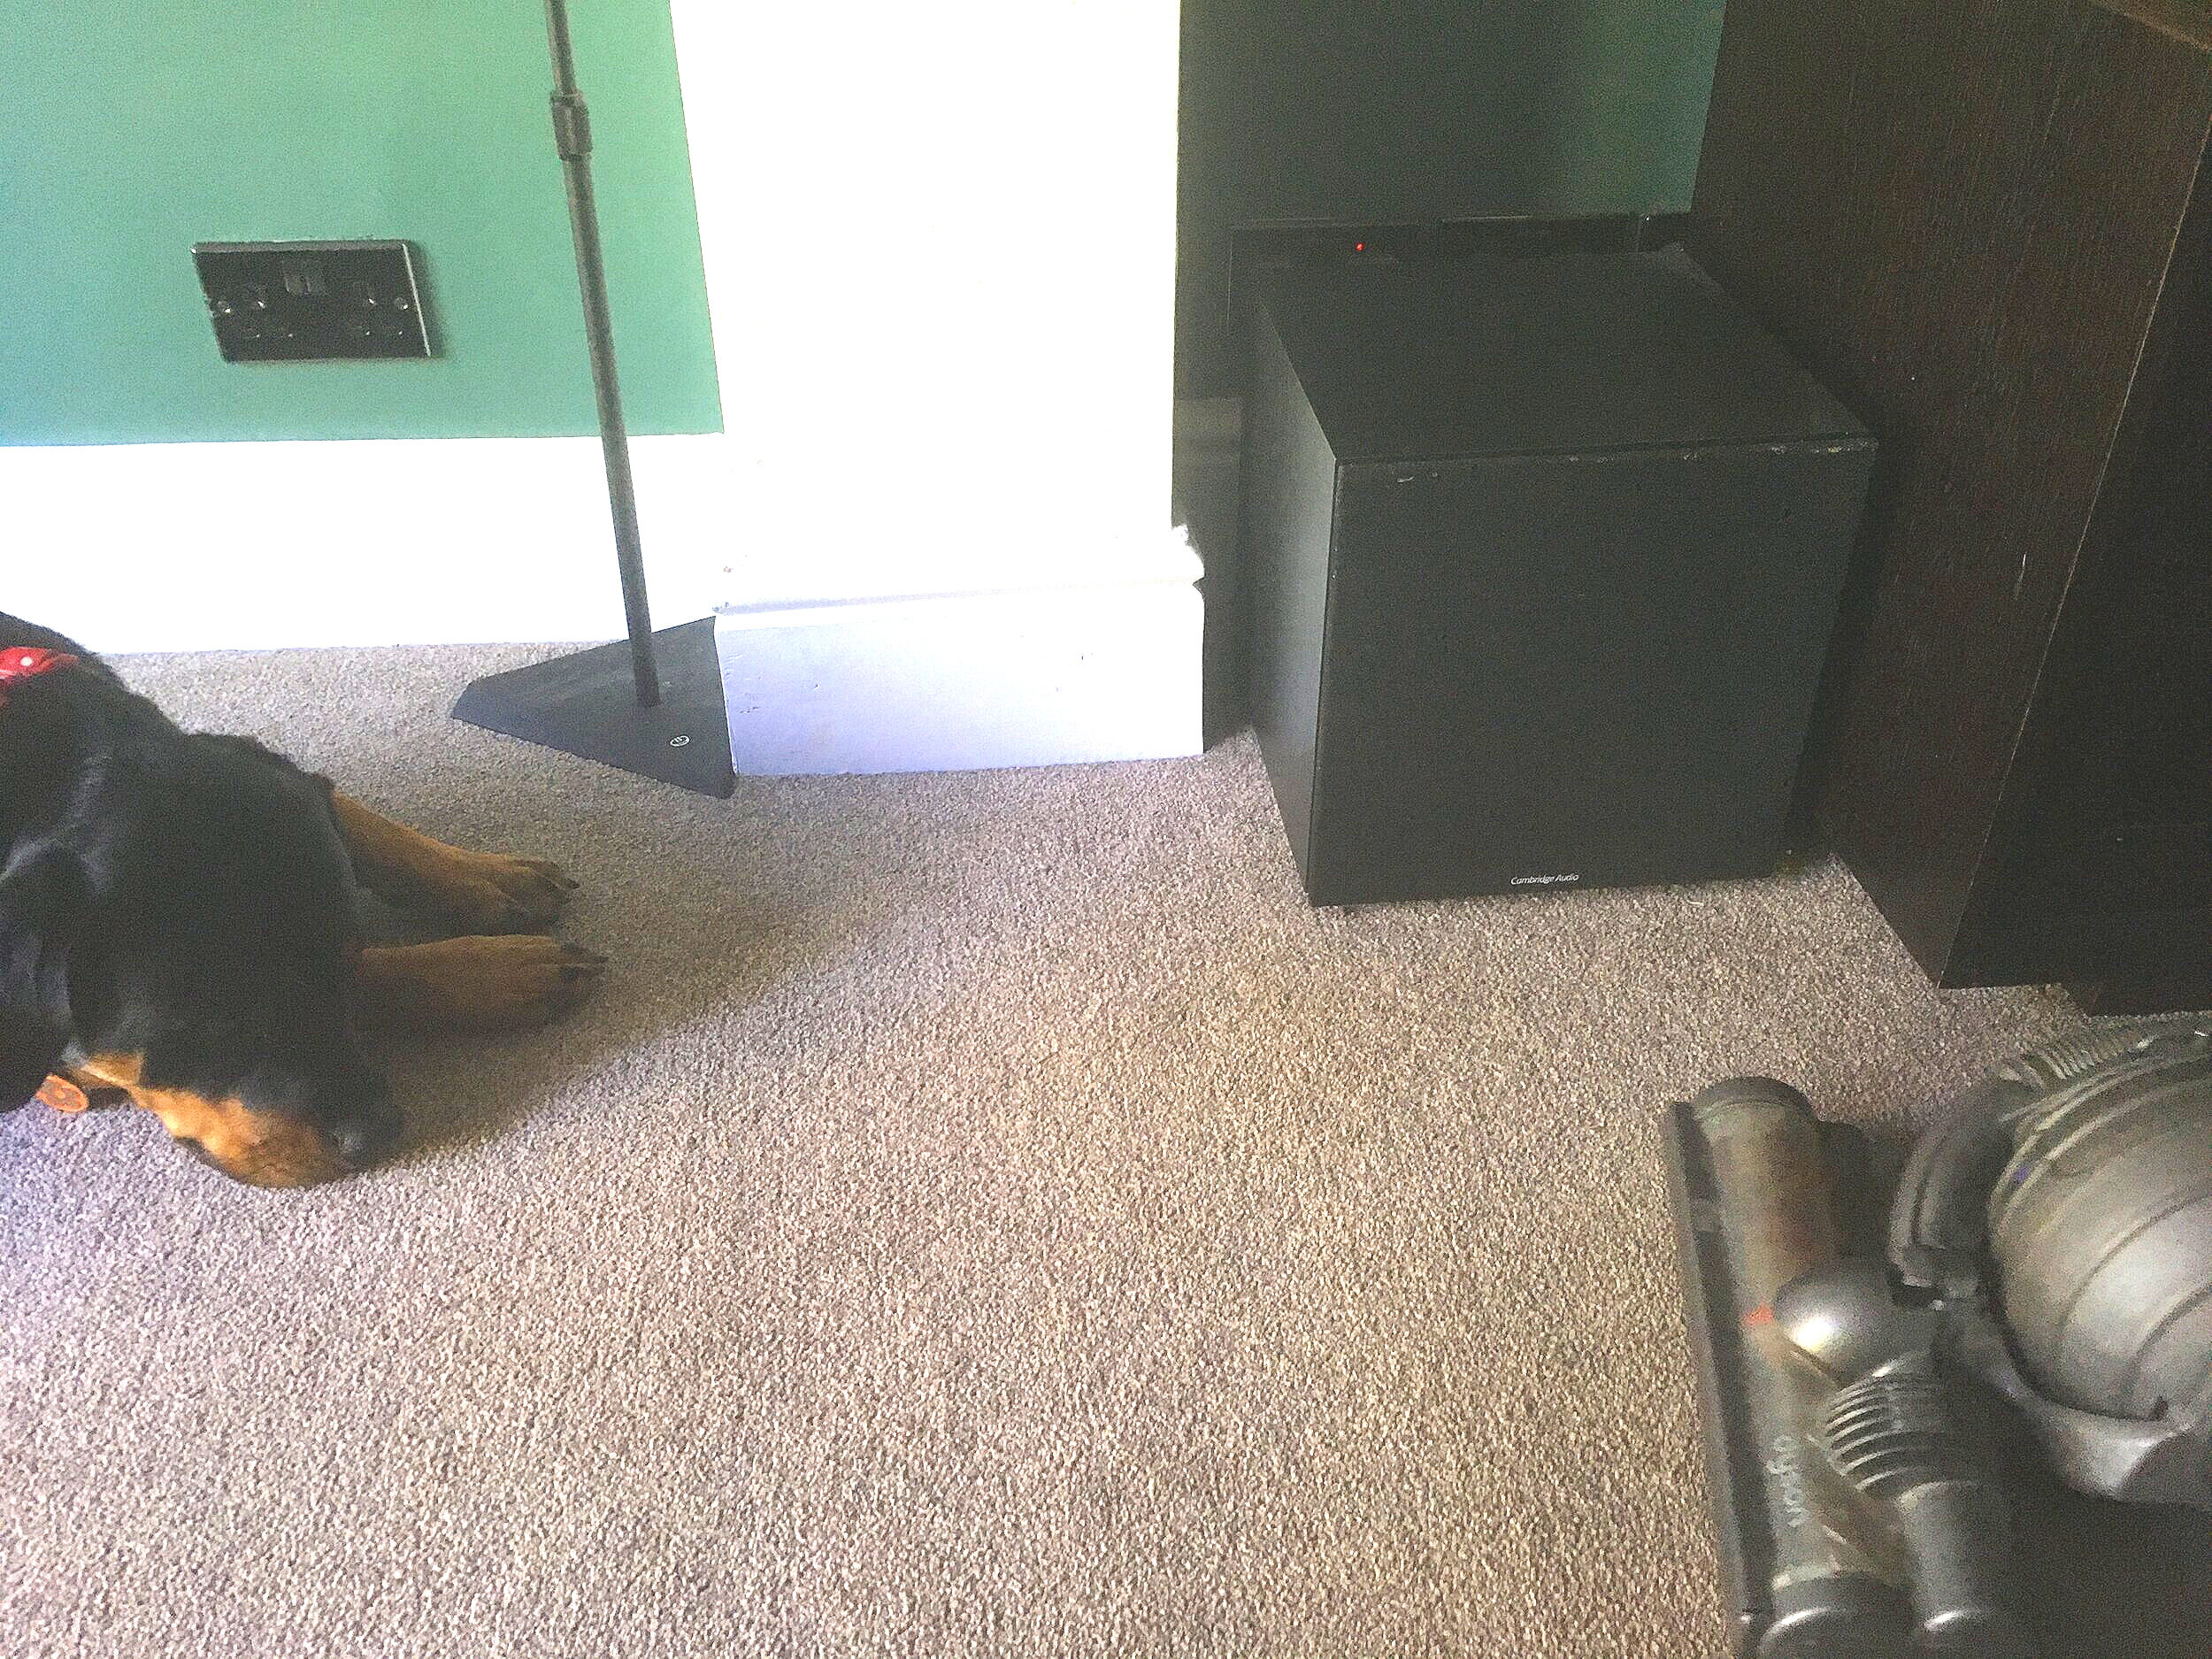 rotweiller and vacuum cleaner.JPG